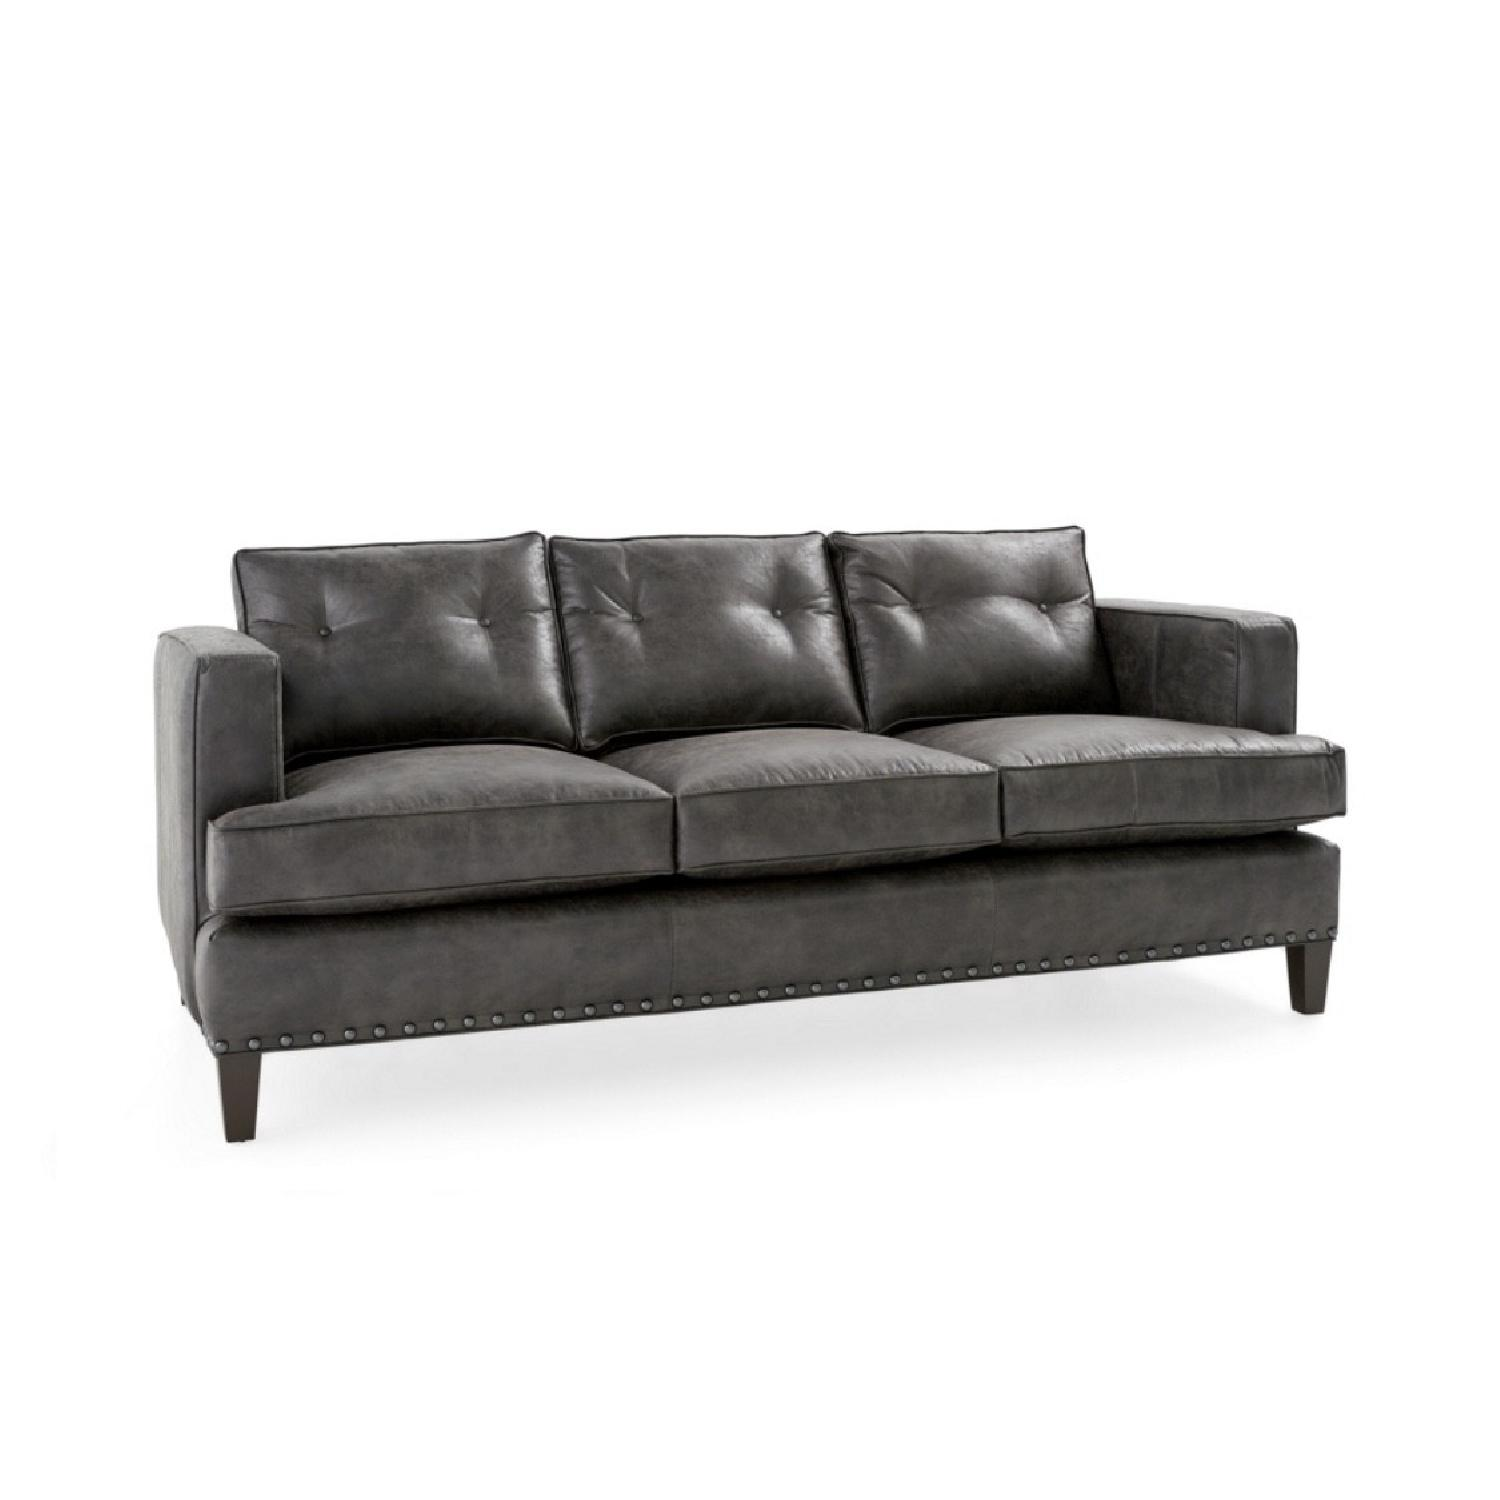 Arhaus Flanders Leather 3 Seater Sofa